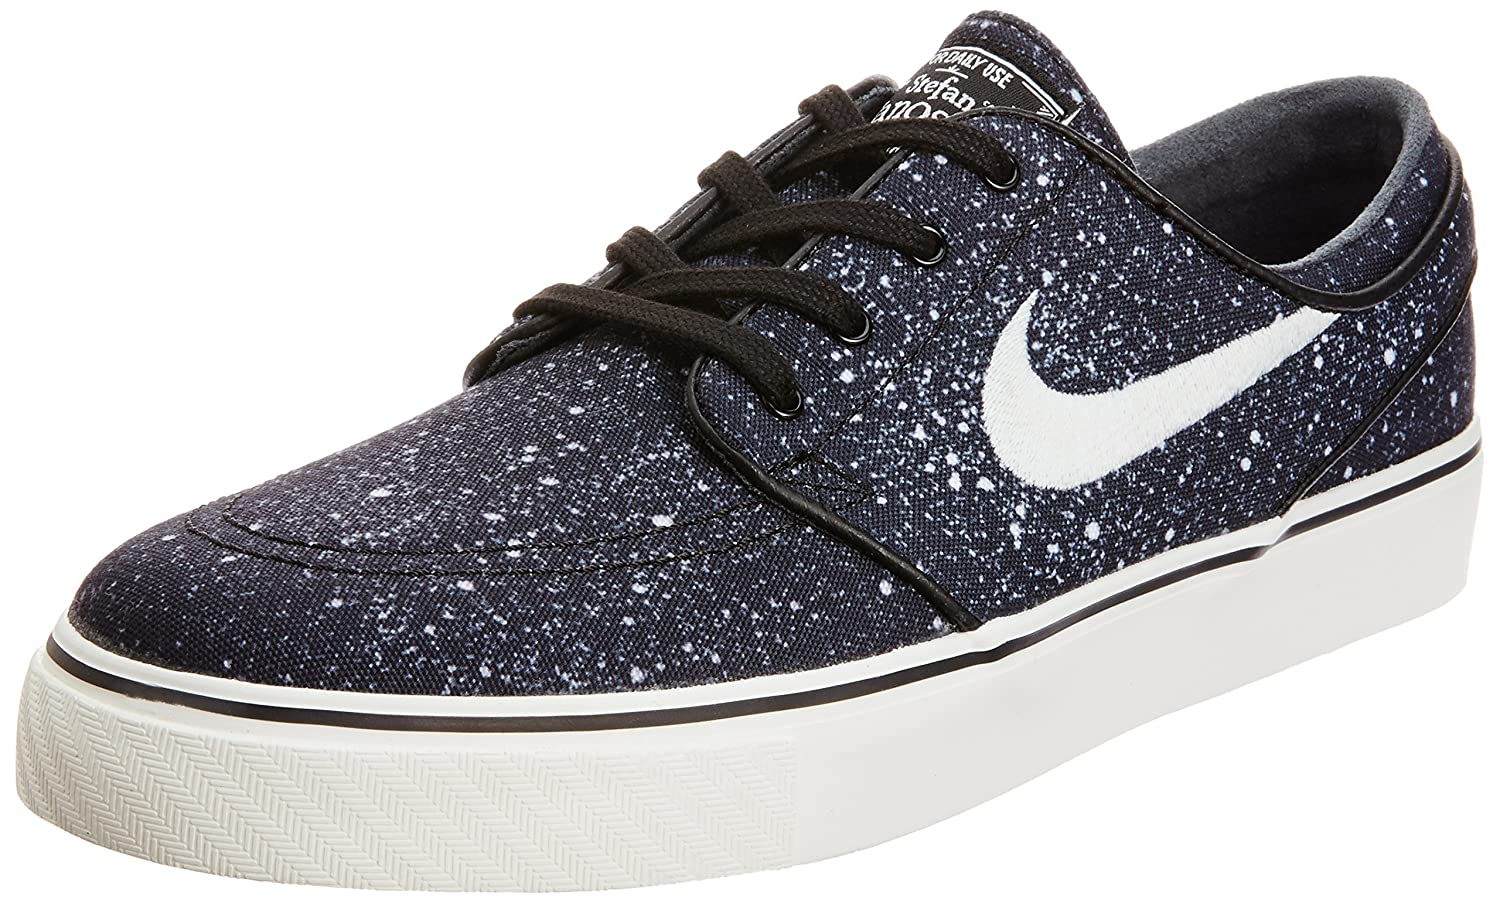 b61ac51a48fd Nike Skate Shoe Men Zoom Stefan Janoski Premium Skate Shoes  Amazon.co.uk   Sports   Outdoors